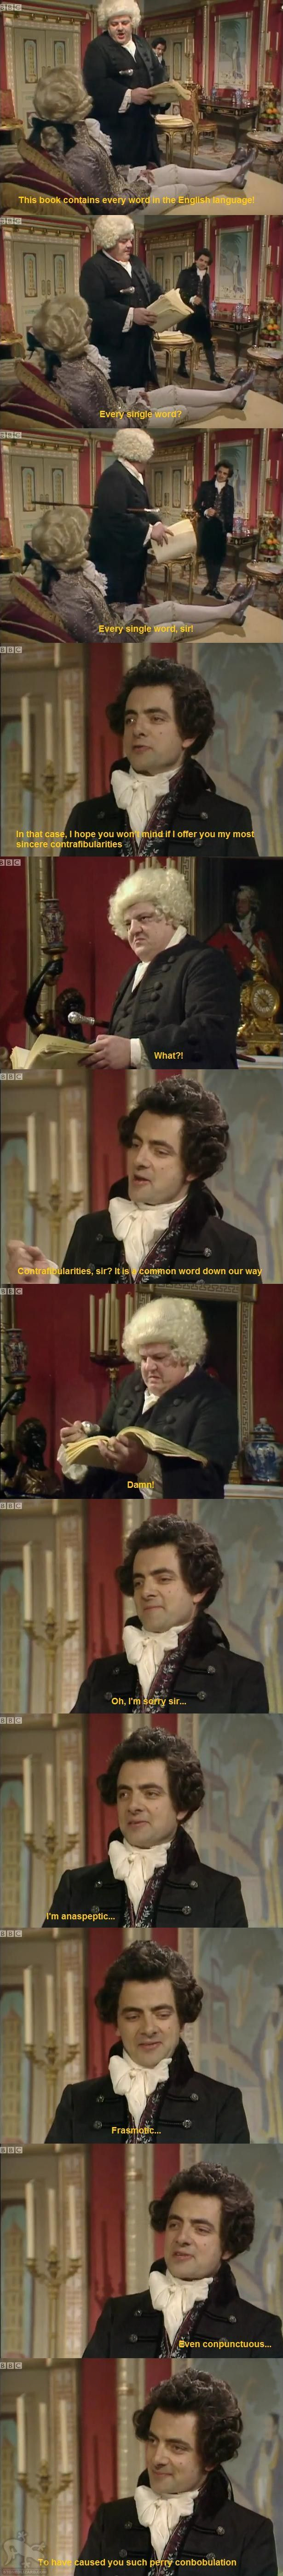 The Dictionary: one of the funniest episodes of Blackadder!